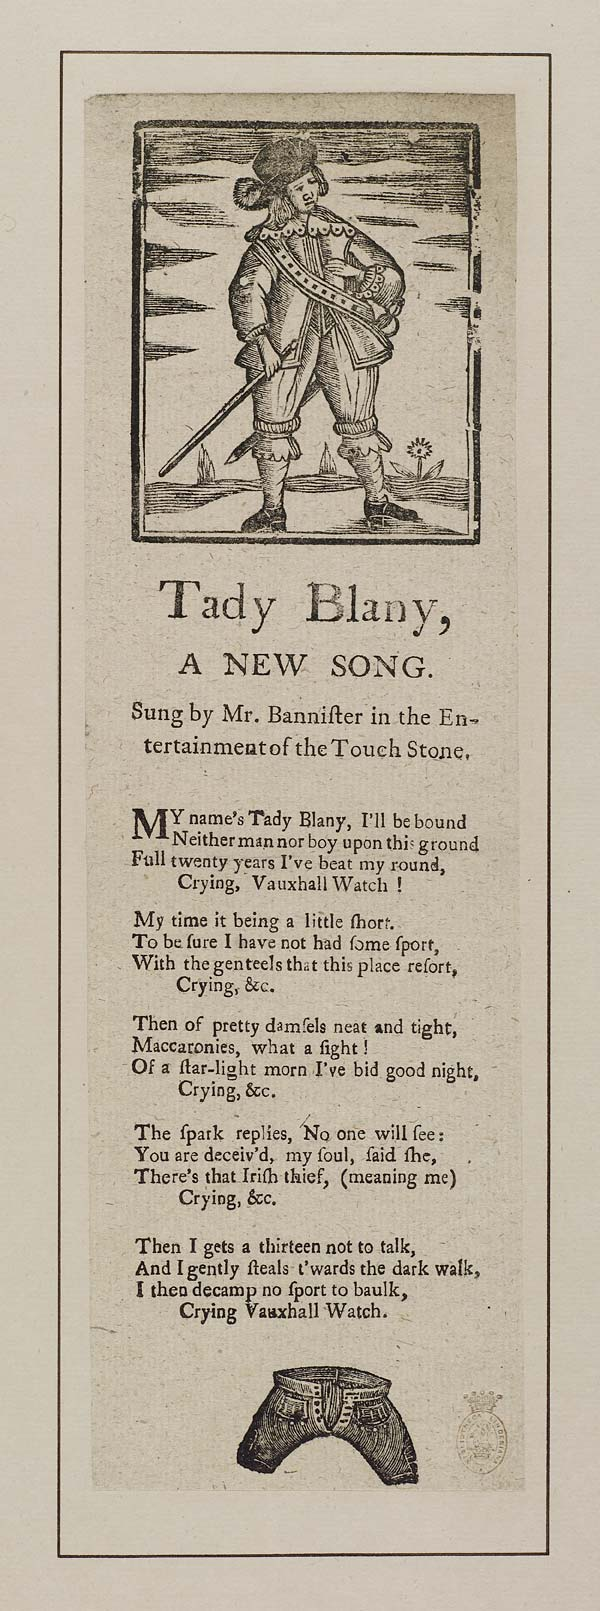 (22) Tady Blany, a new song